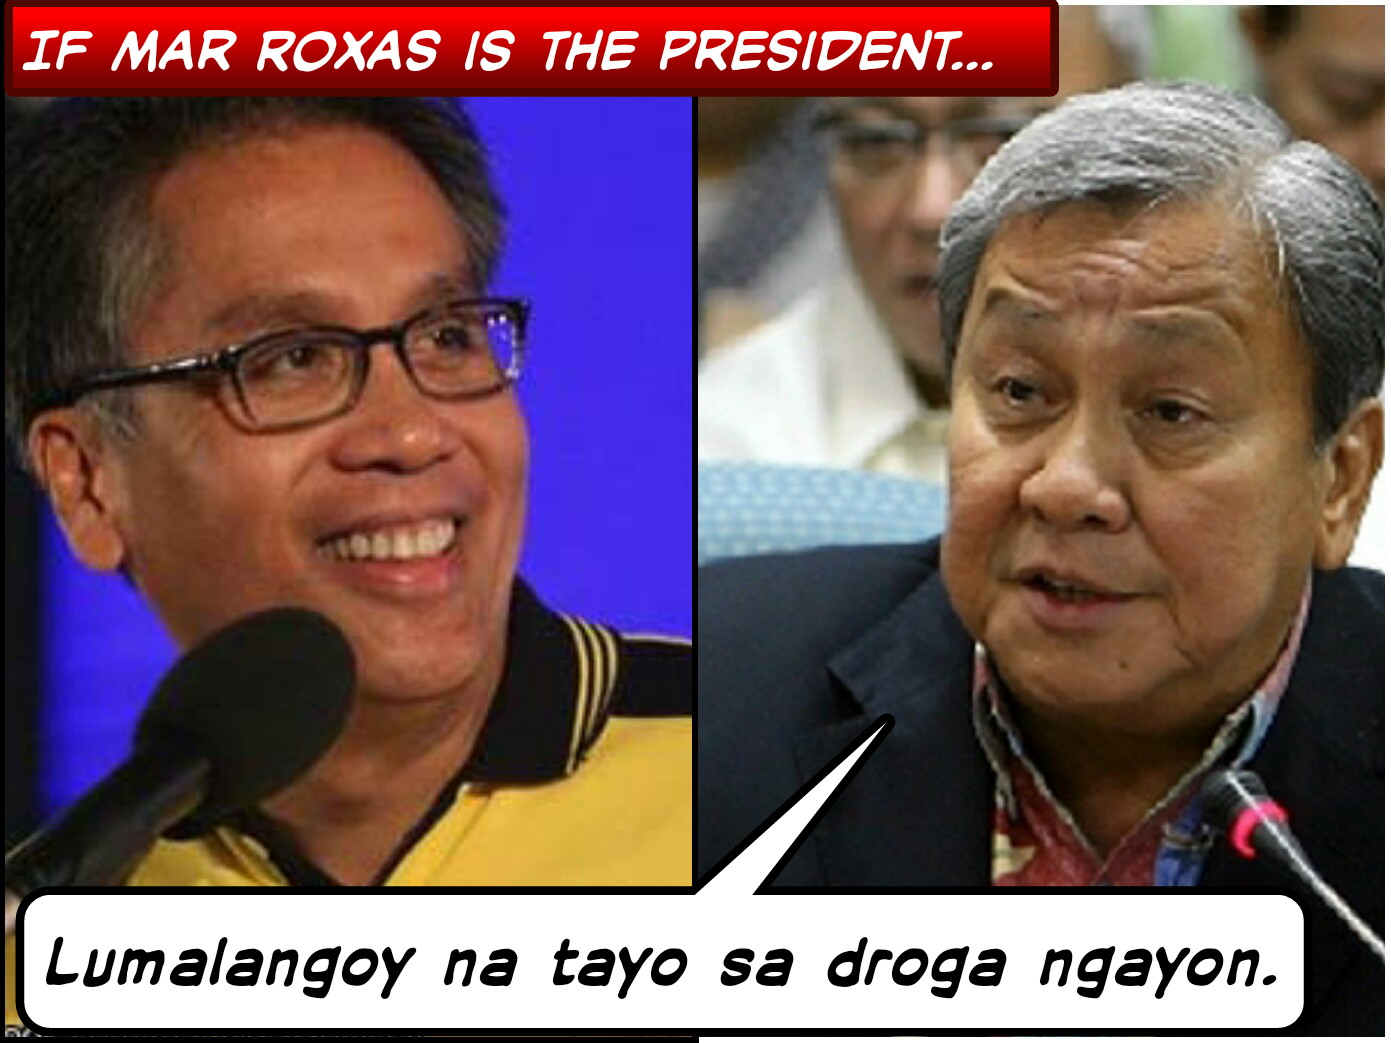 Image of says Atienza if Mar Roxas Won as the President